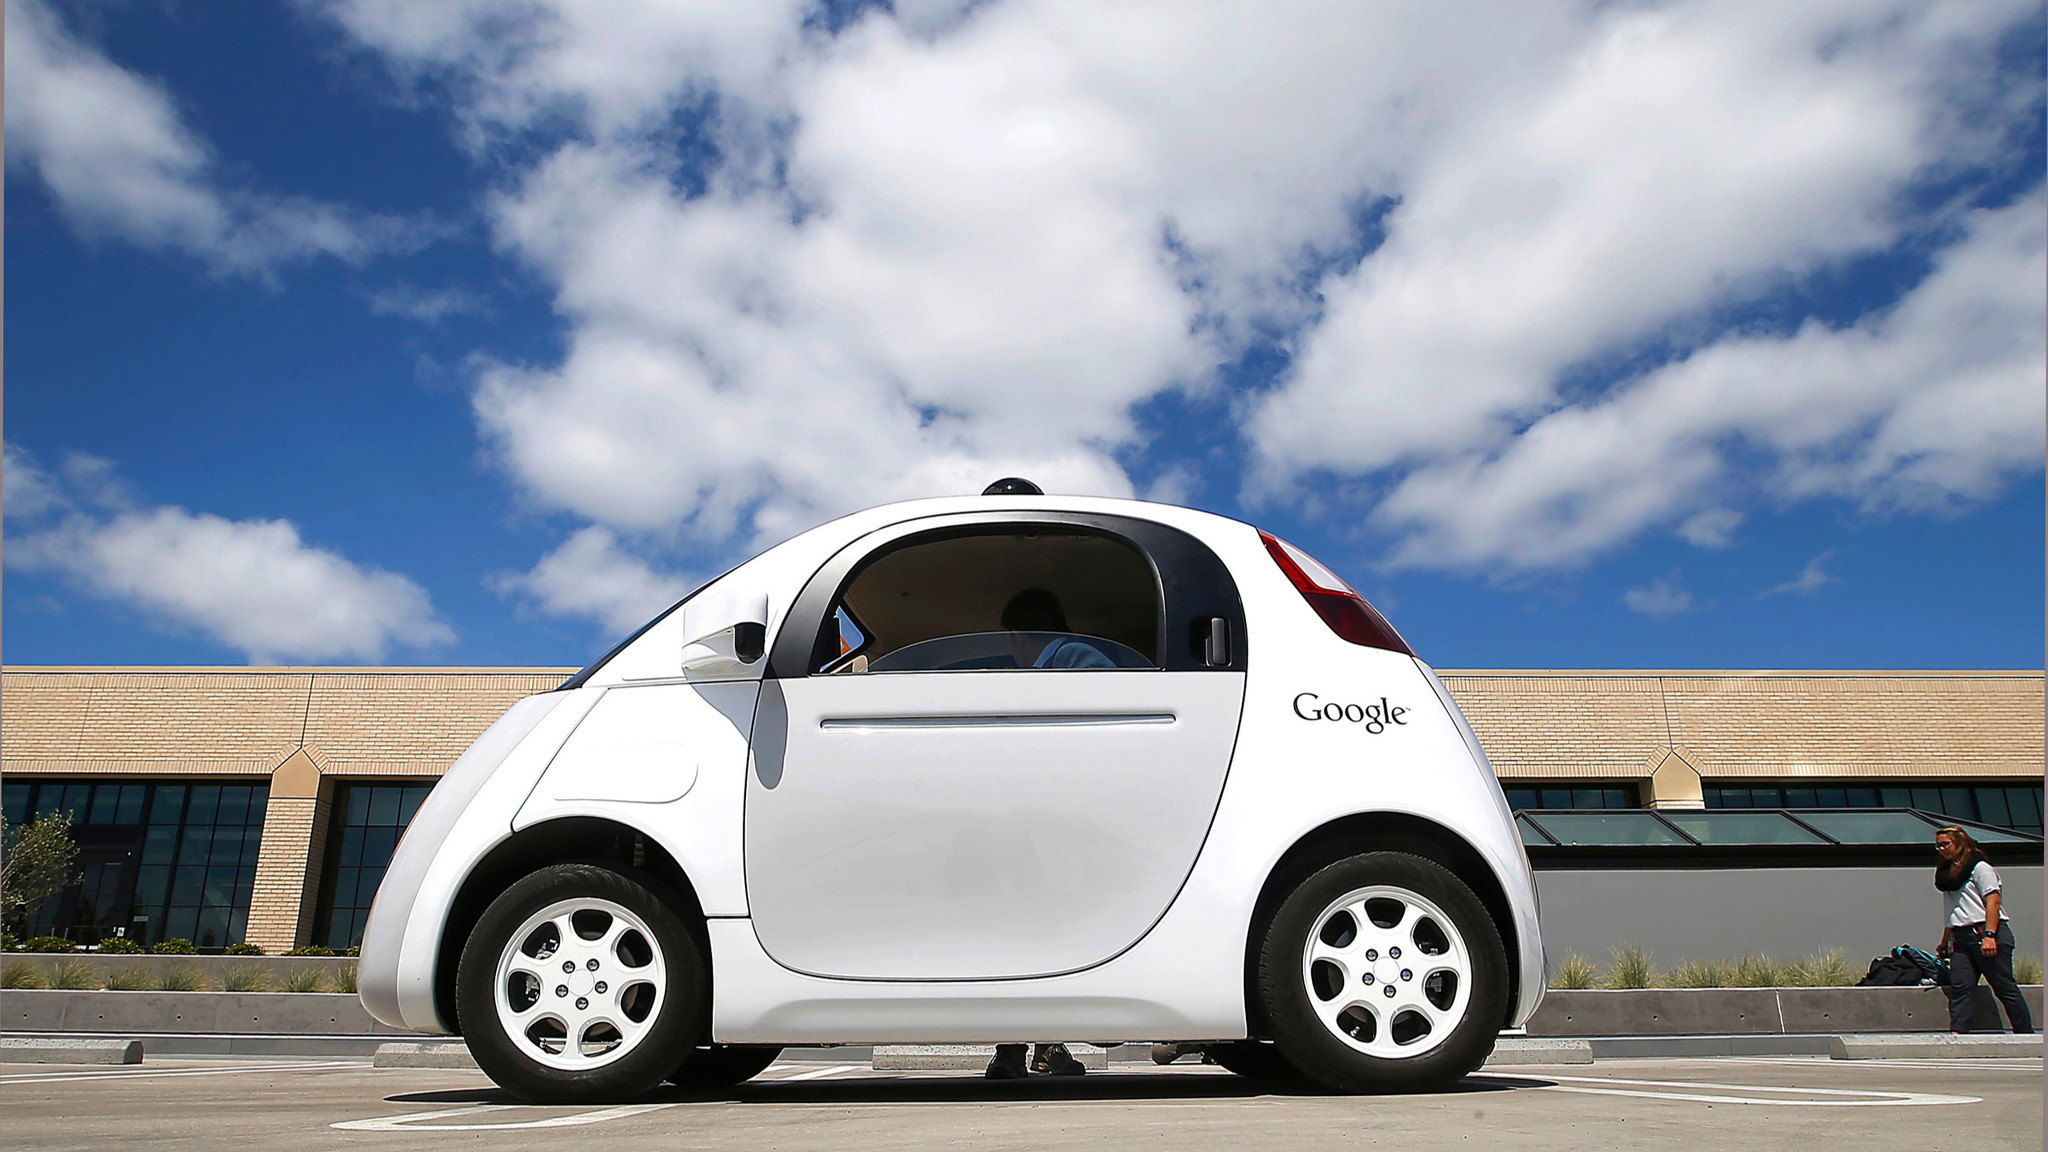 The latest version of Google's self-driving car during a demonstration in Mountain View, Calif., in May 2015.